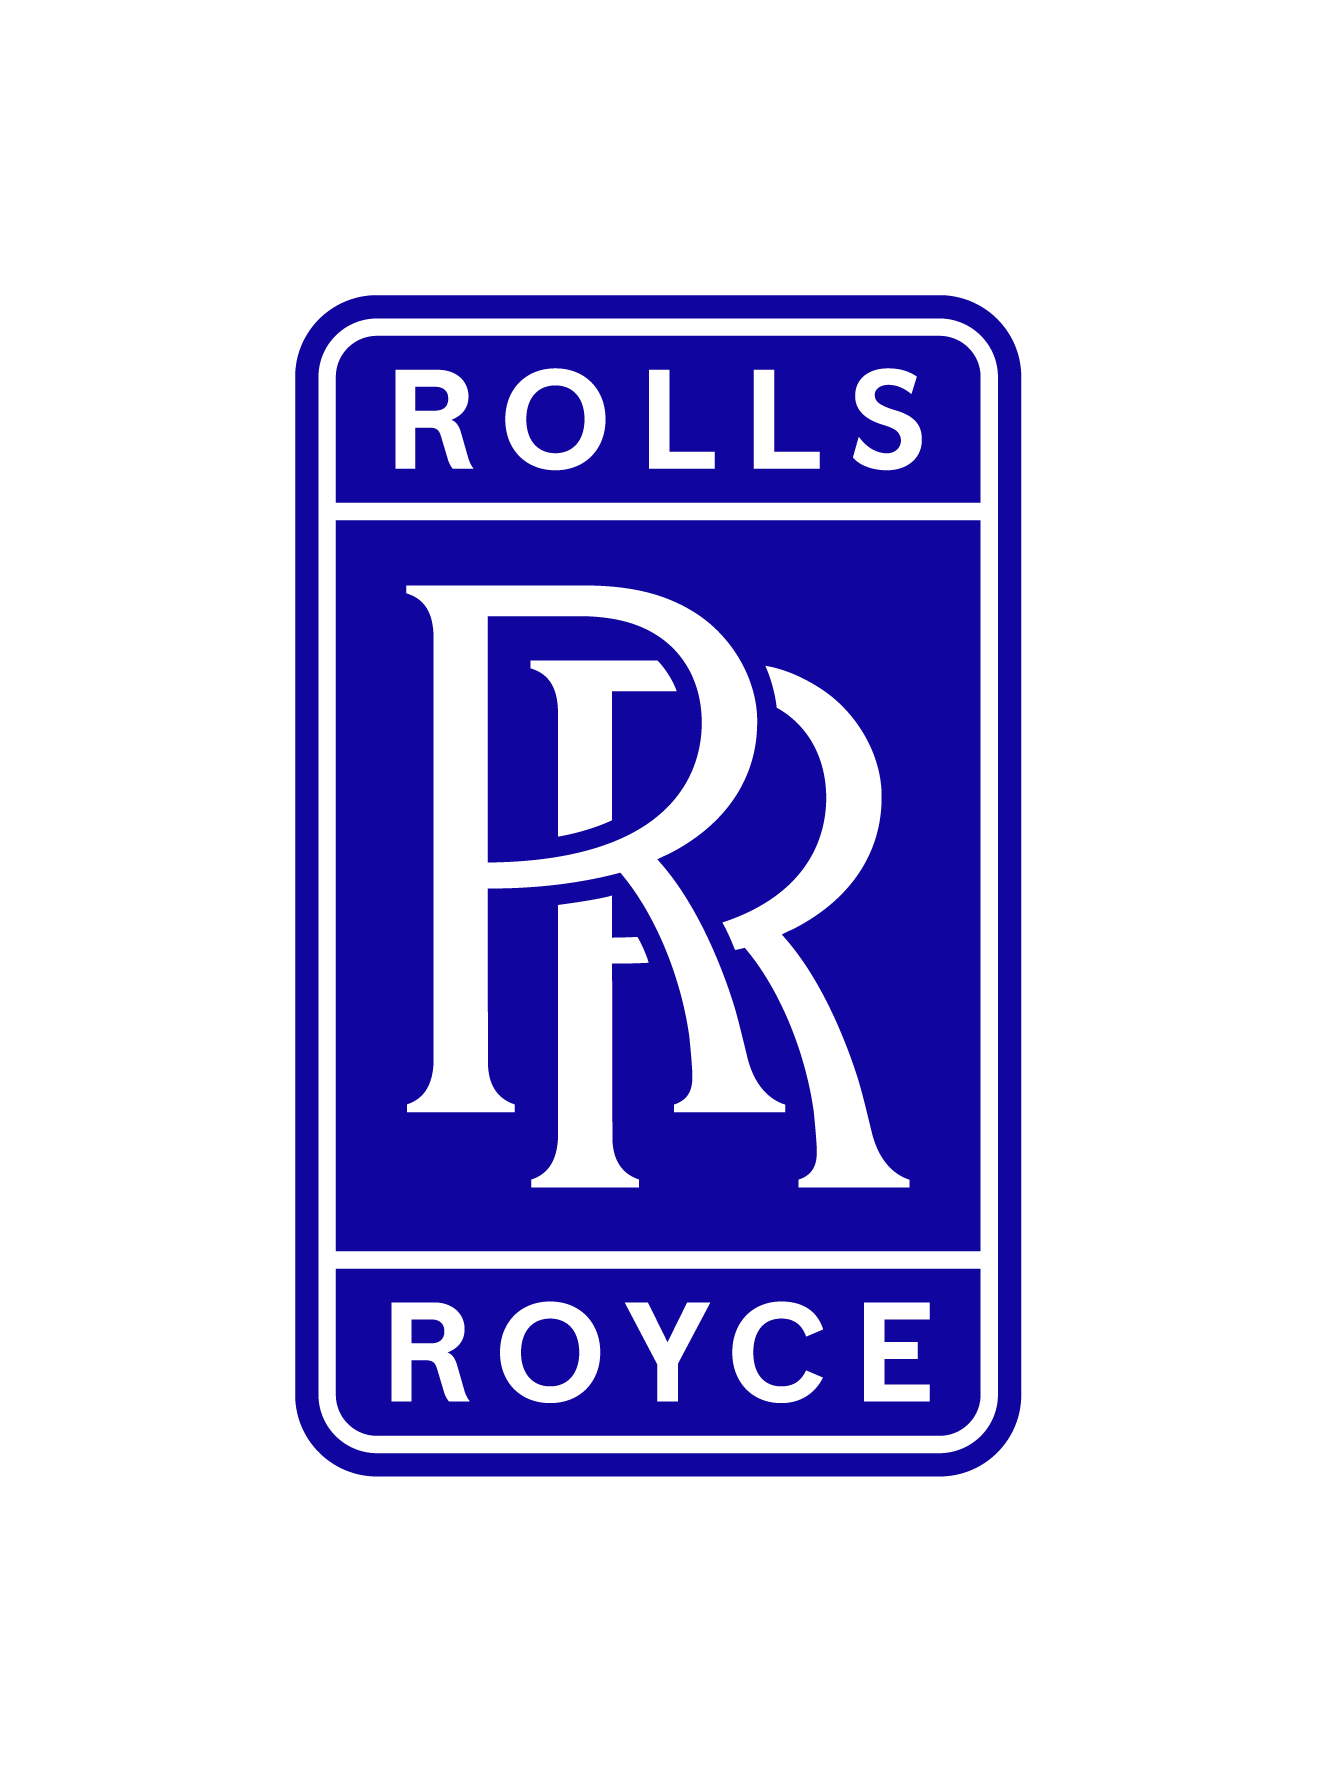 Rolls Royce Holdings Plc Rr Stock London Stock Exchange